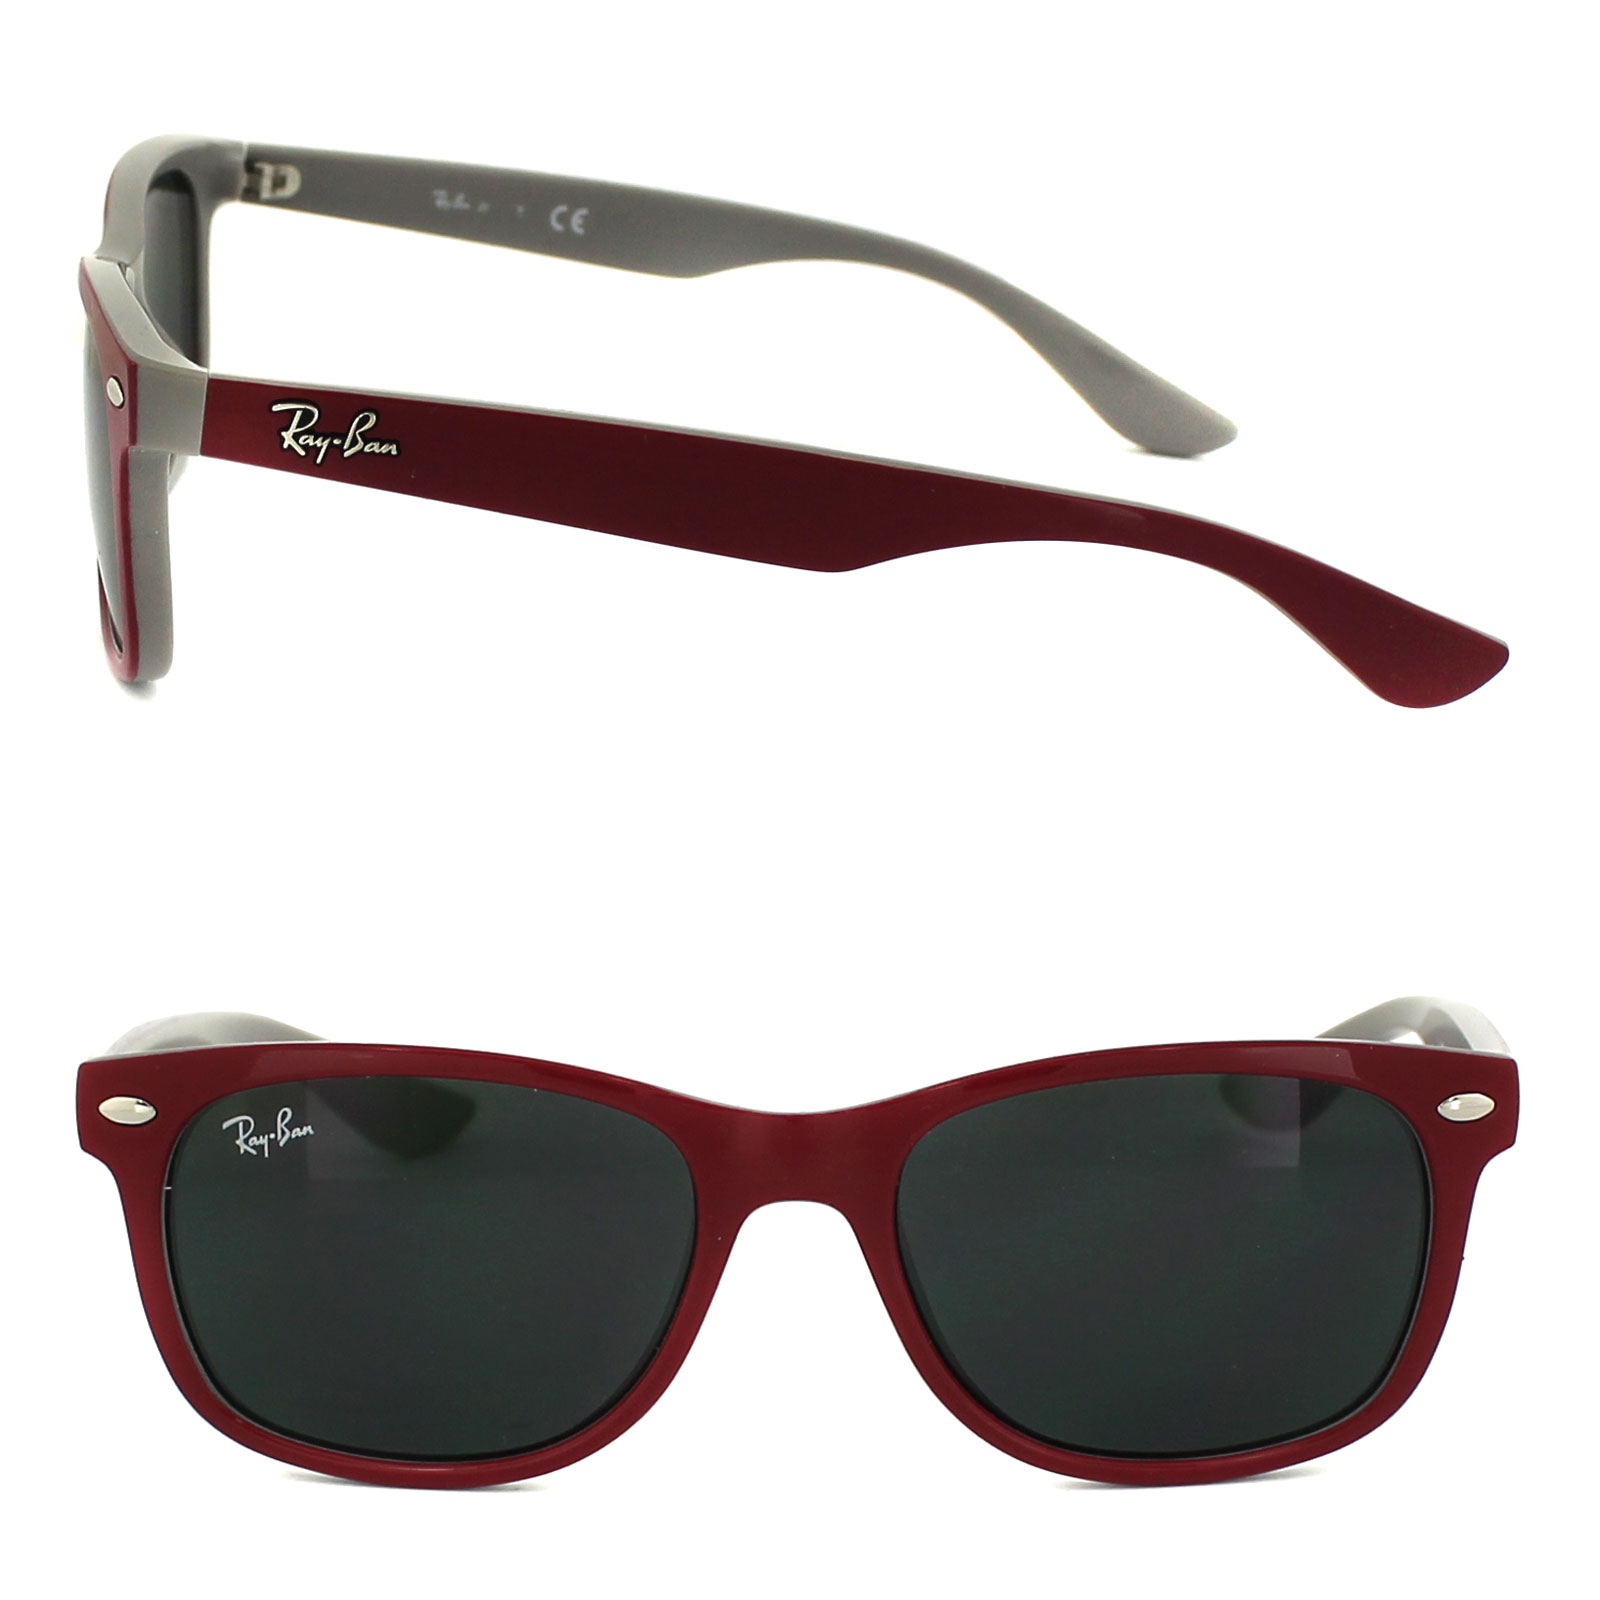 Ray-Ban Junior Sunglasses Ray-Ban sunglasses are the world's most recognisable style and branding in sunglasses, Ray-Ban lead where others follow with their Aviator and Wayfarer designs. The company was founded in and have become the cornerstone of what's hot in the optical fashion world.